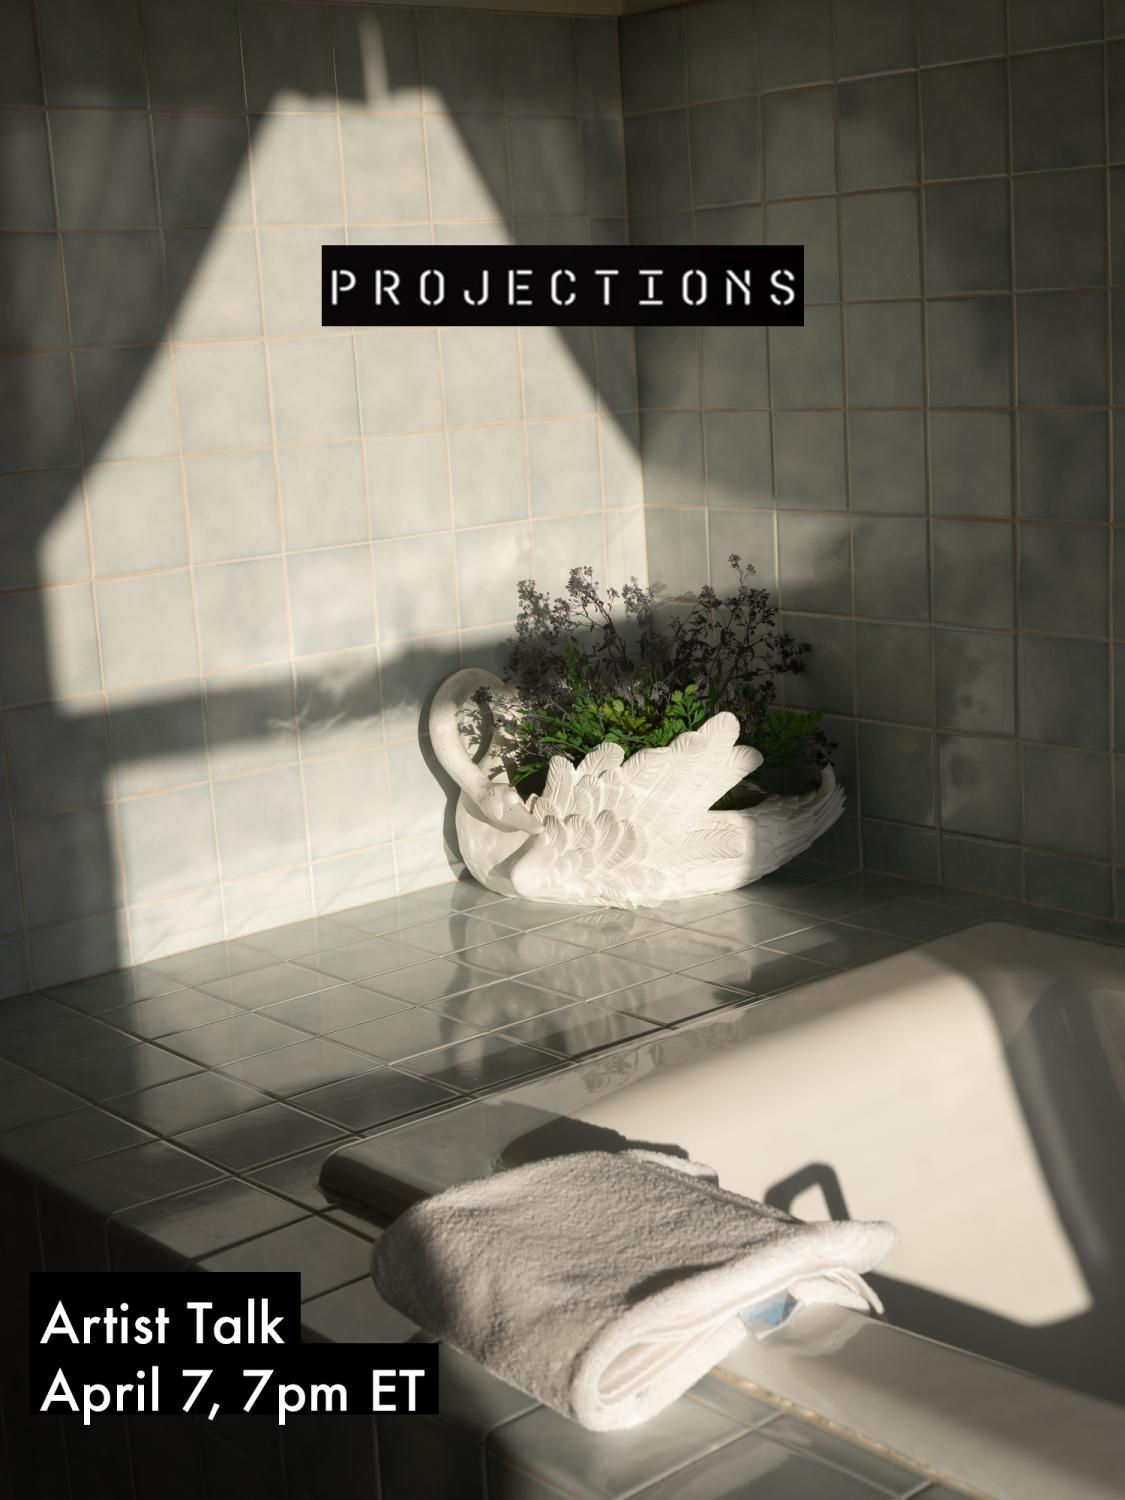 Art and Documentary Photography - Loading ProjectionsPromo2.jpg